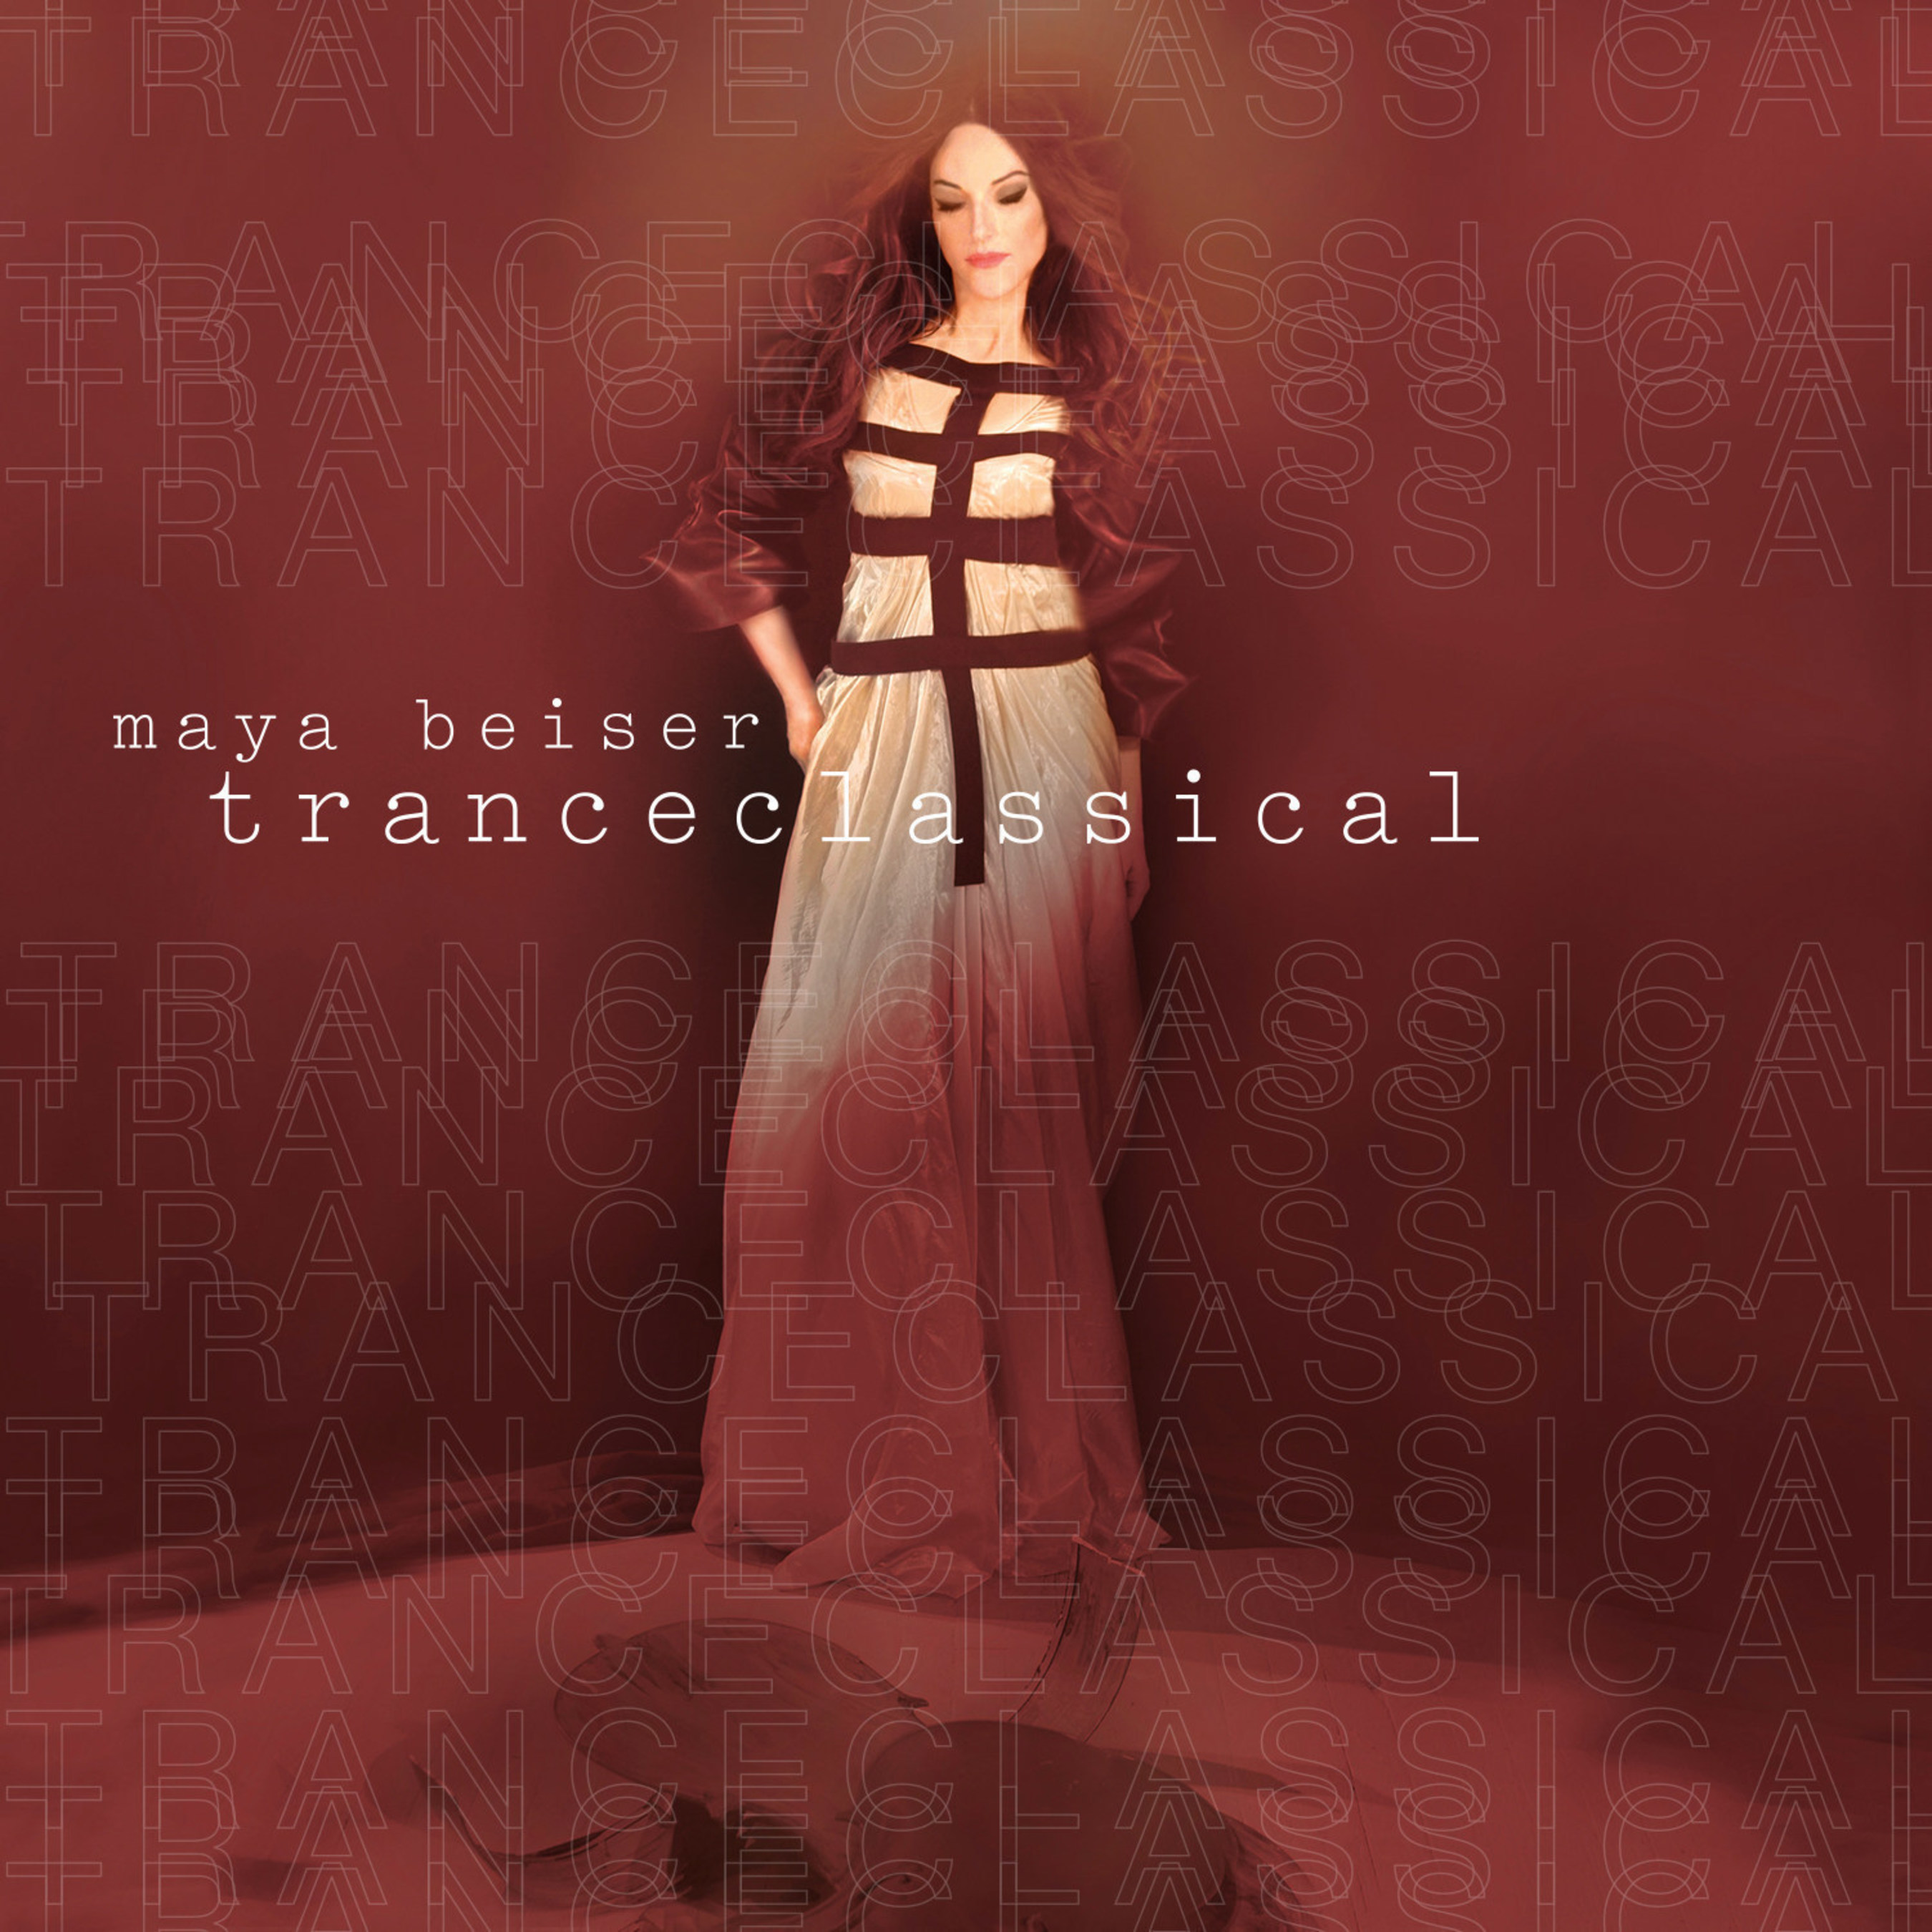 Maya Beiser's TranceClassical will be released July 29, 2016. The full album is streaming for one week, beginning on July 22, exclusively on Apple Music.